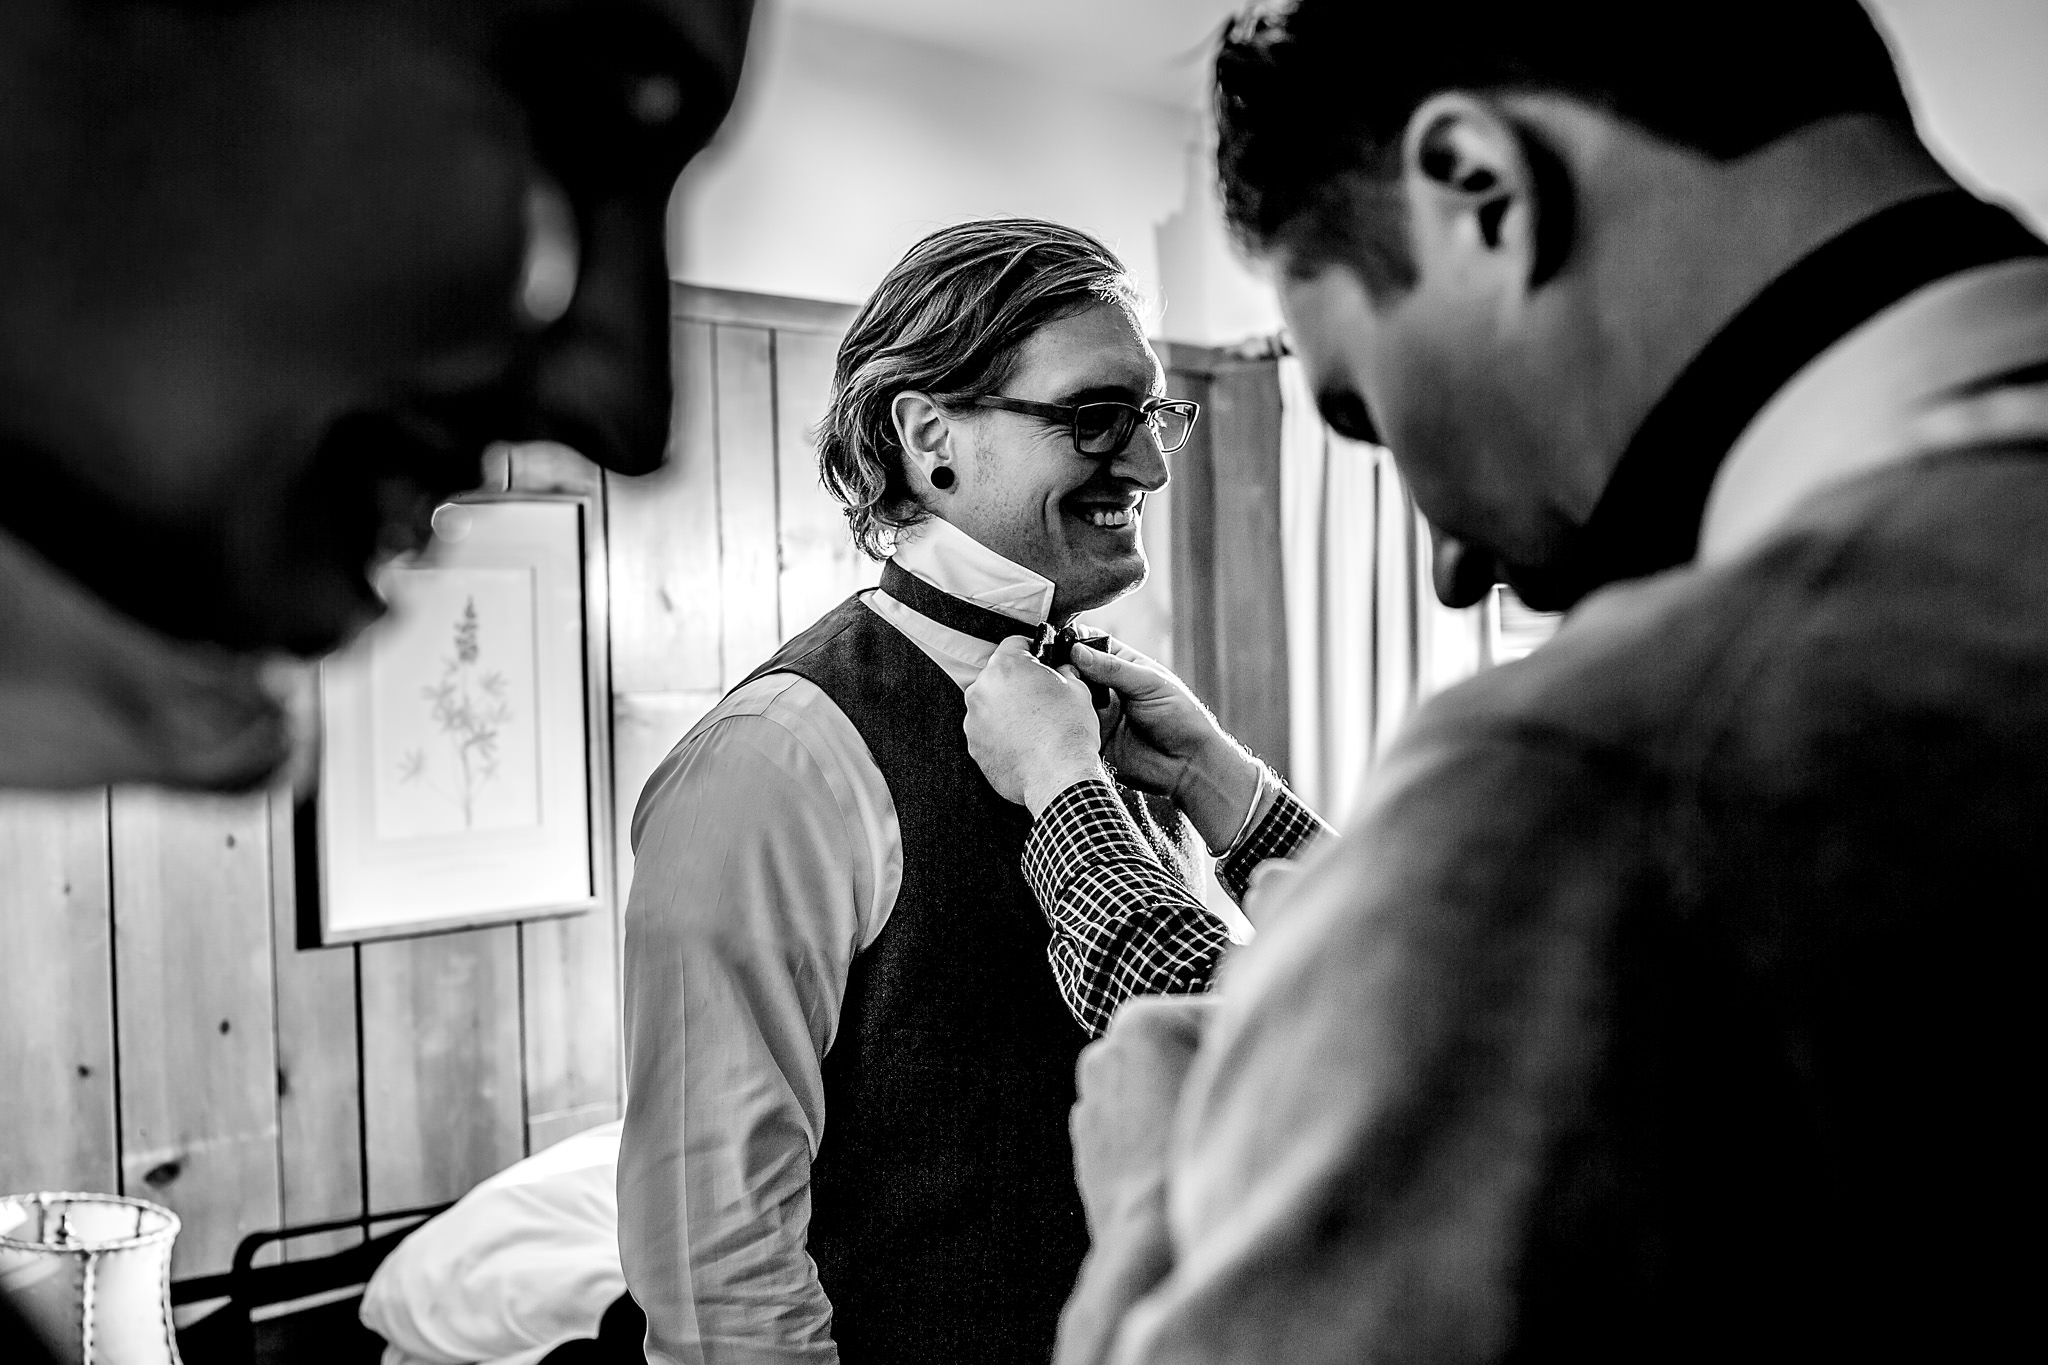 Groom getting ready at Timberline Lodge with friends